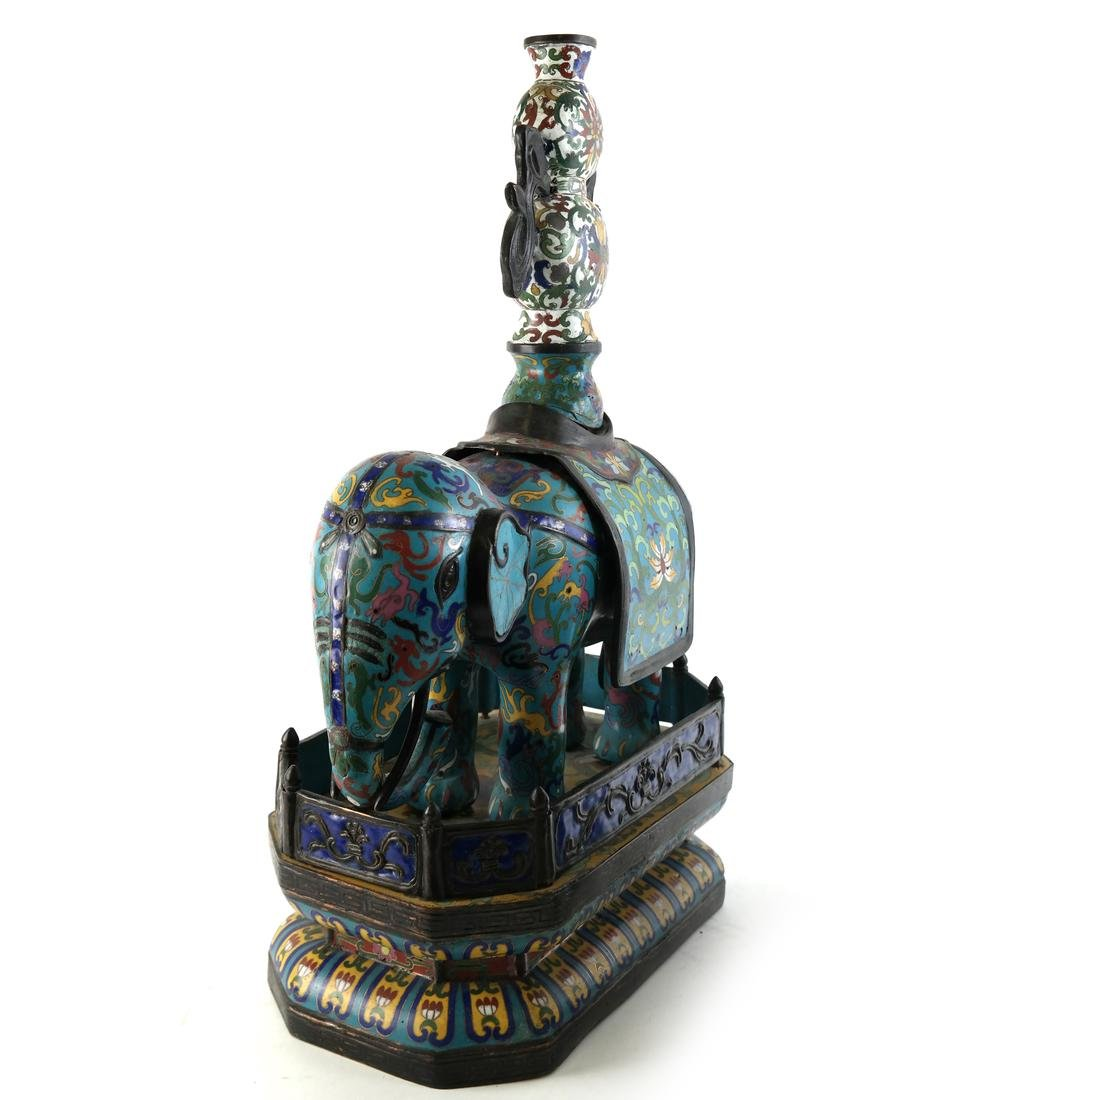 Pr Chinese Cloisonne Elephants with Vase - 3